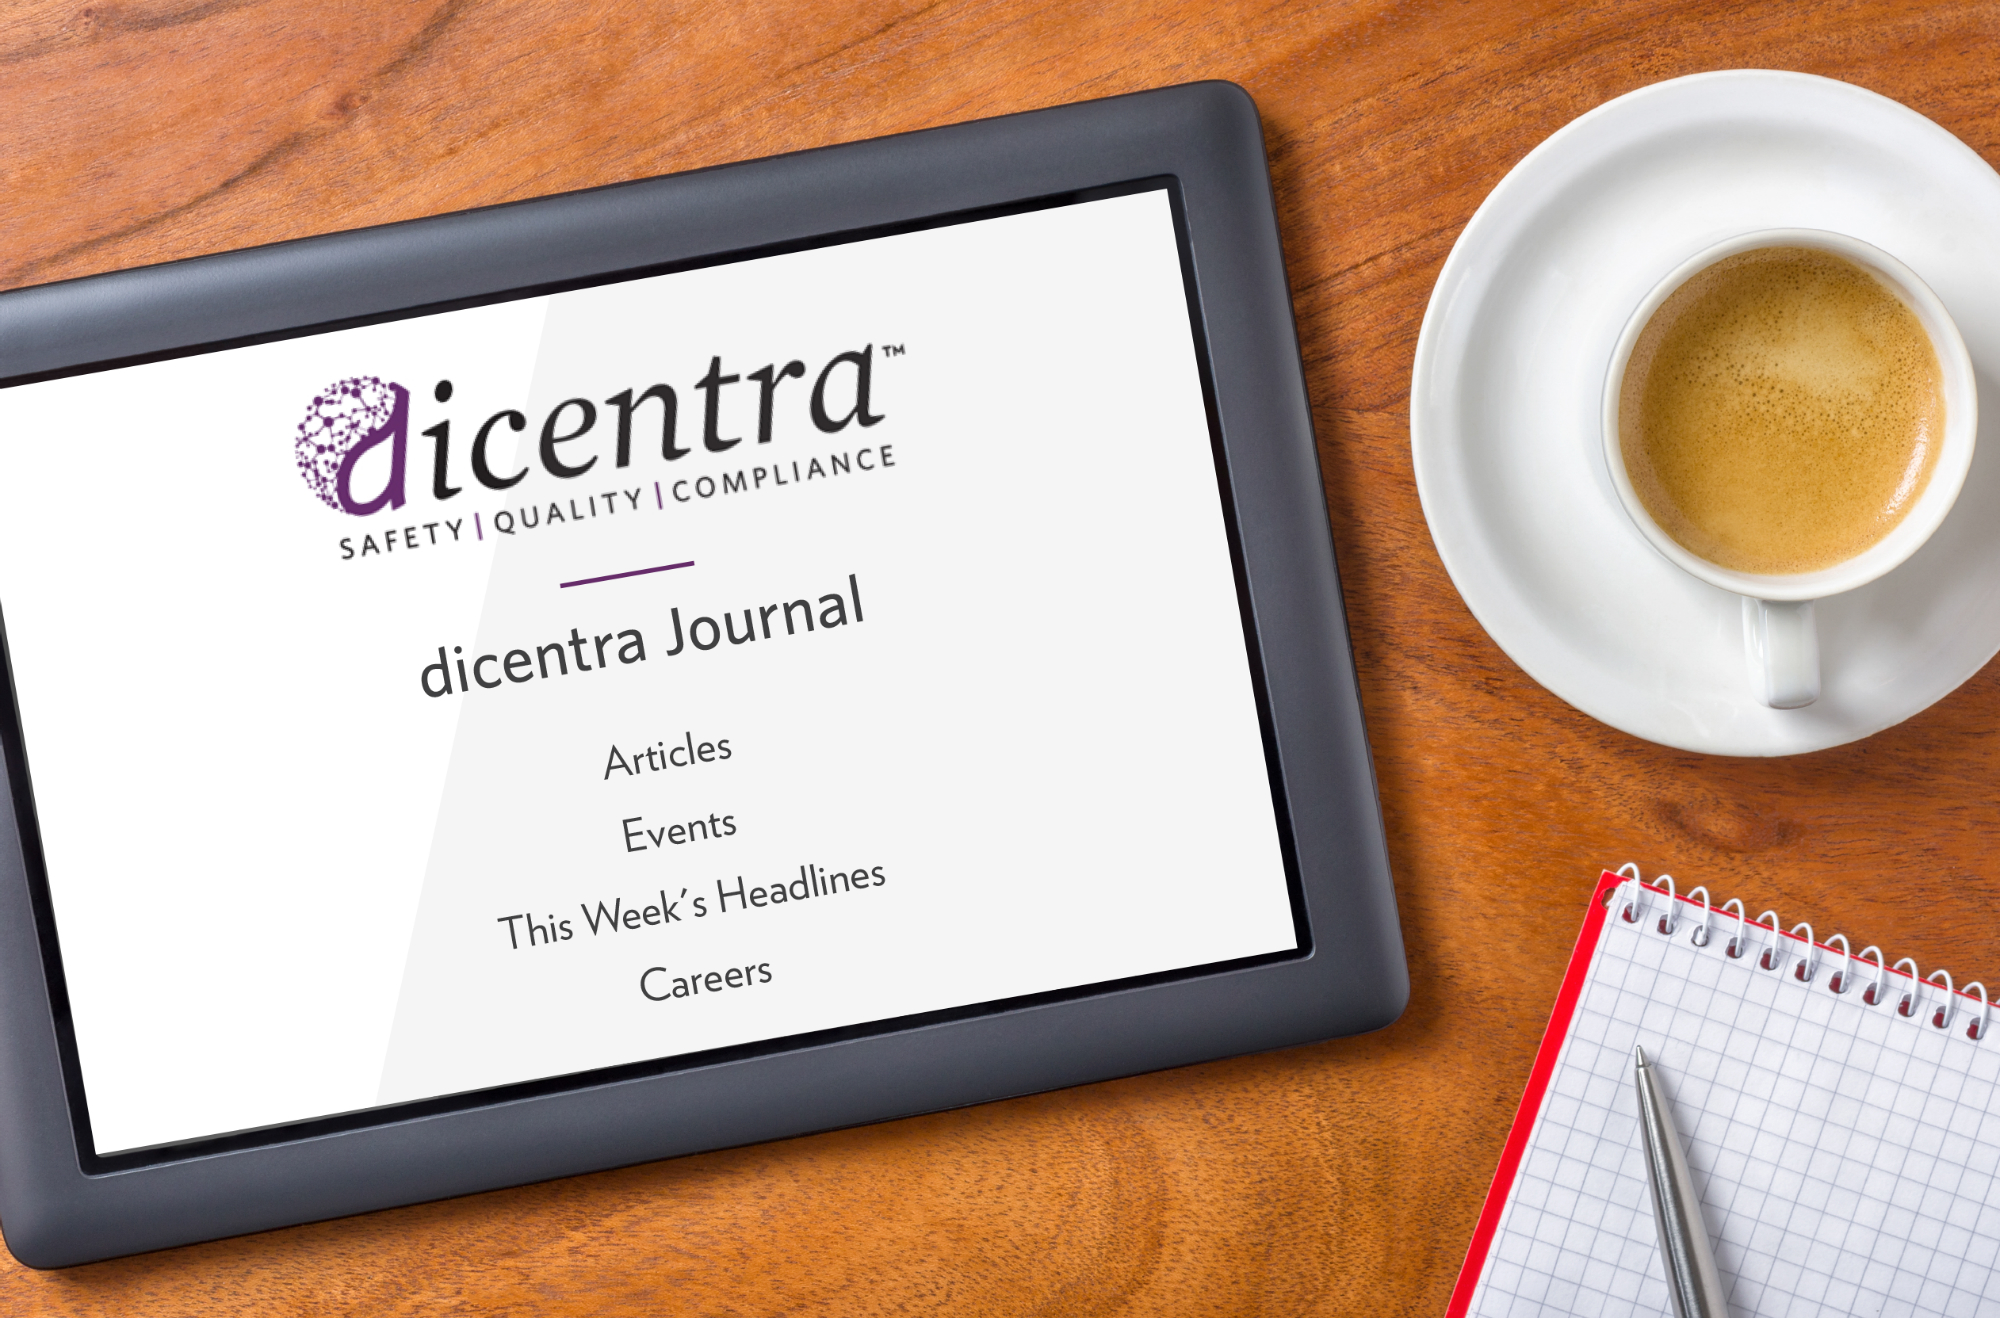 dicentra Journal: August